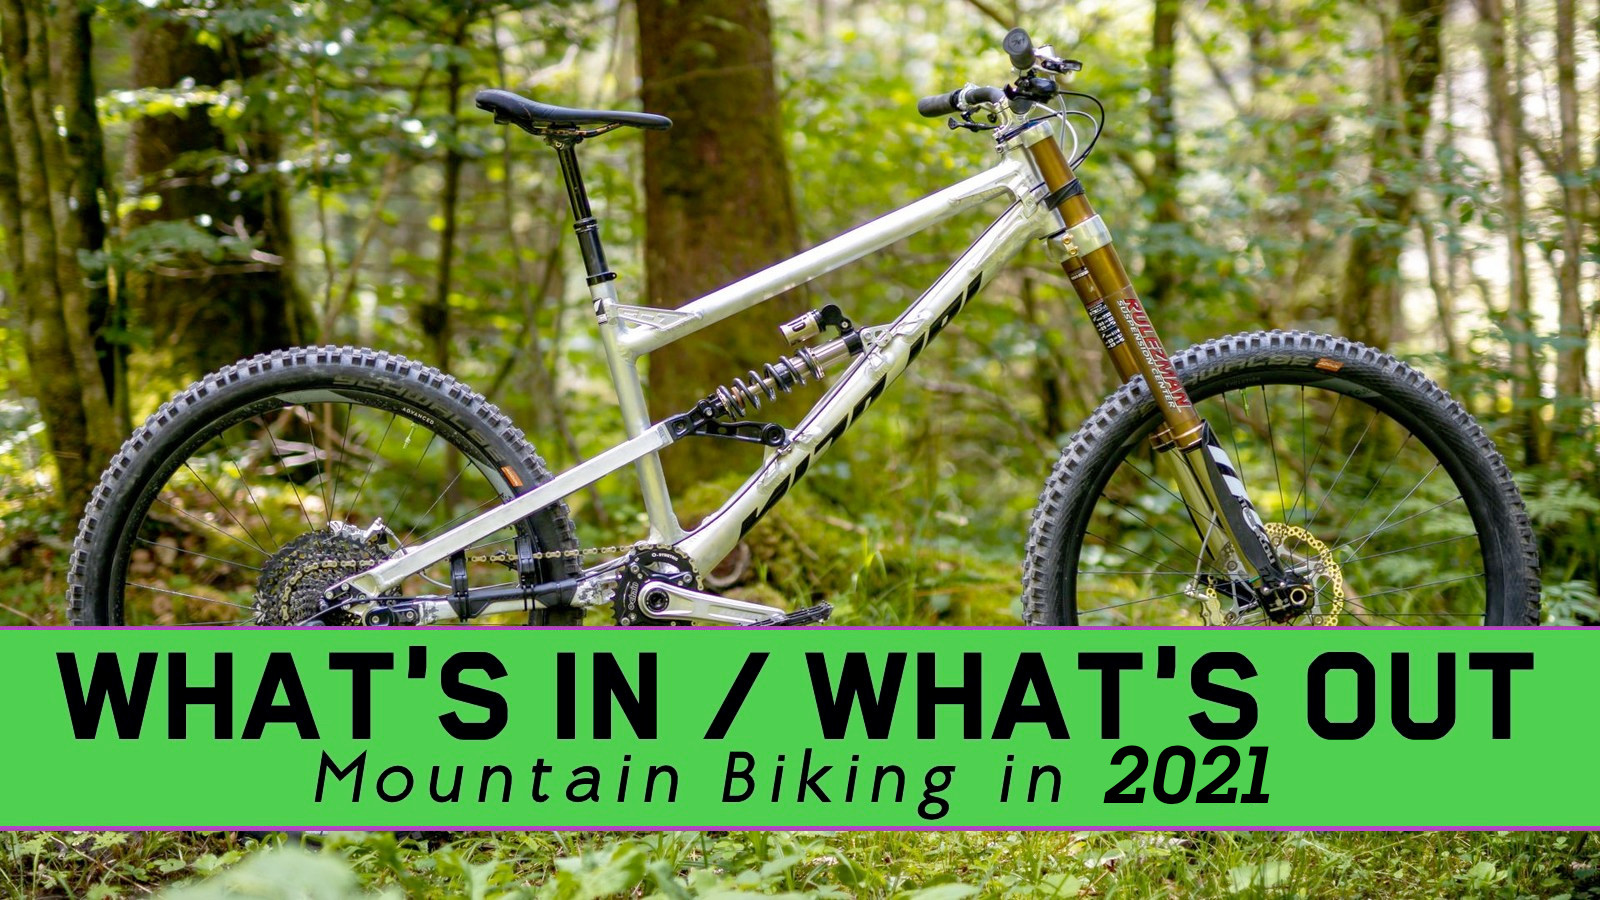 What's In / What's Out - Mountain Biking in 2021